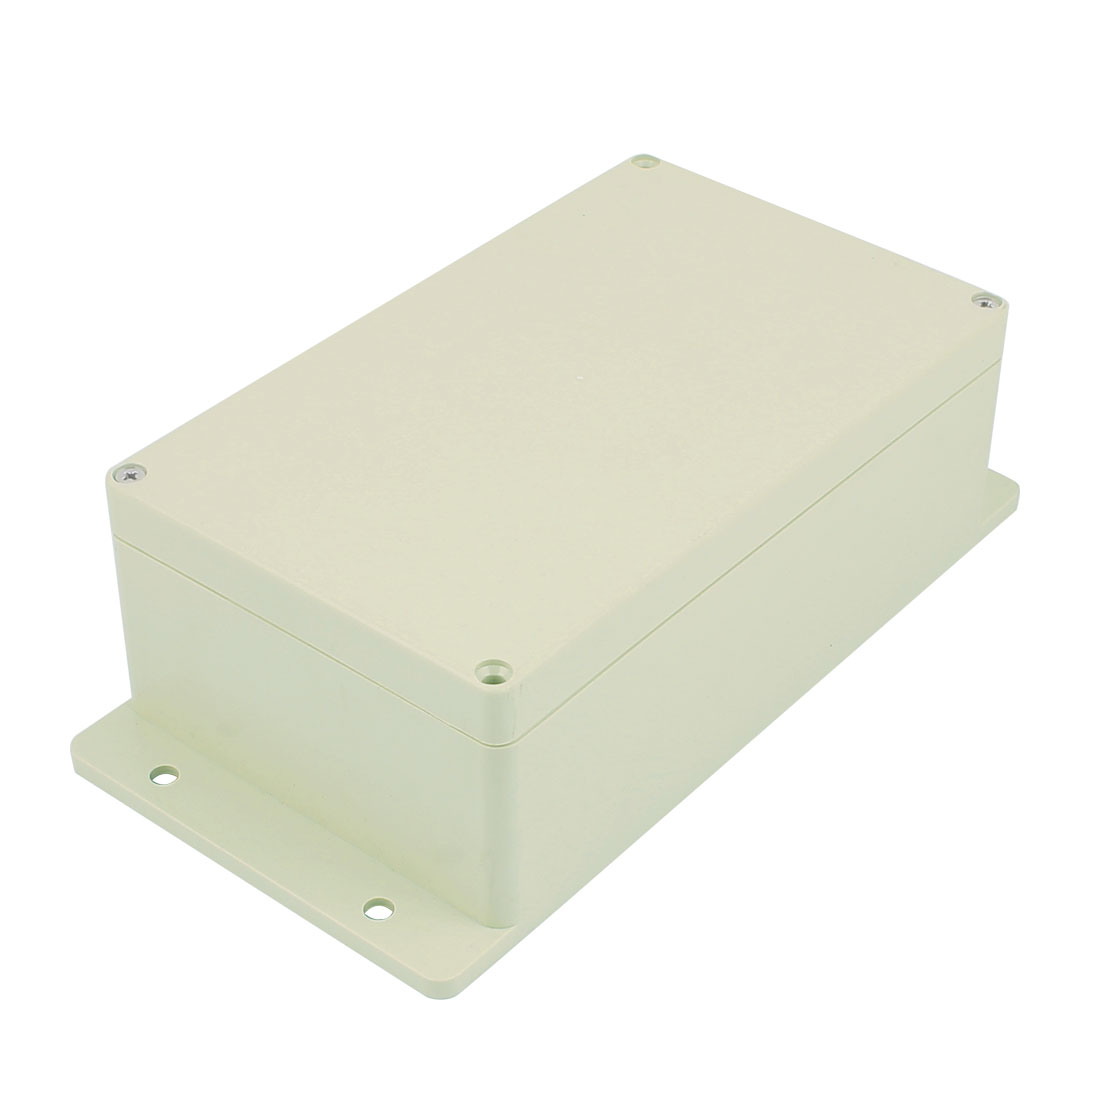 Dustproof IP65 Junction Box DIY Terminal Connection Enclosure Adaptable 192mm x 112mm x 67mm